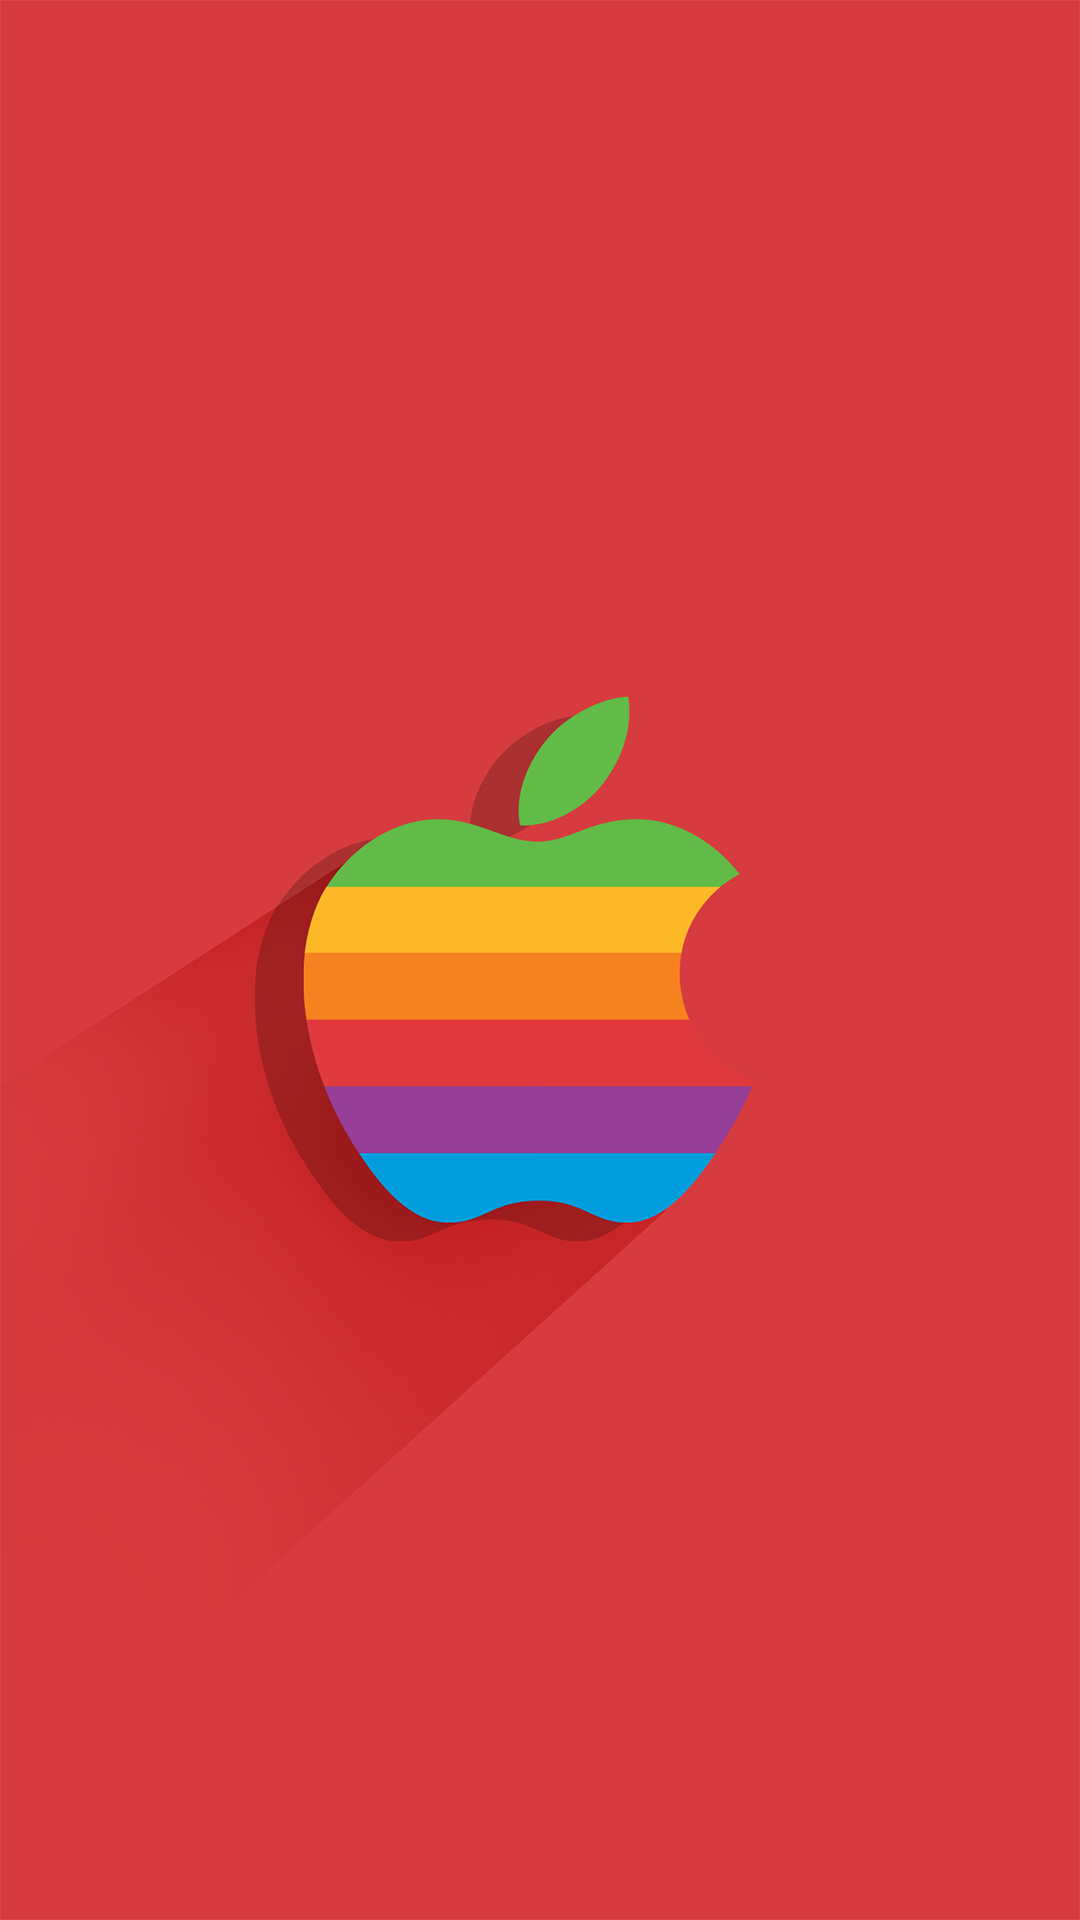 Apple Logo Wallpaper Iphone 6s Plus By Lirking20 On Deviantart